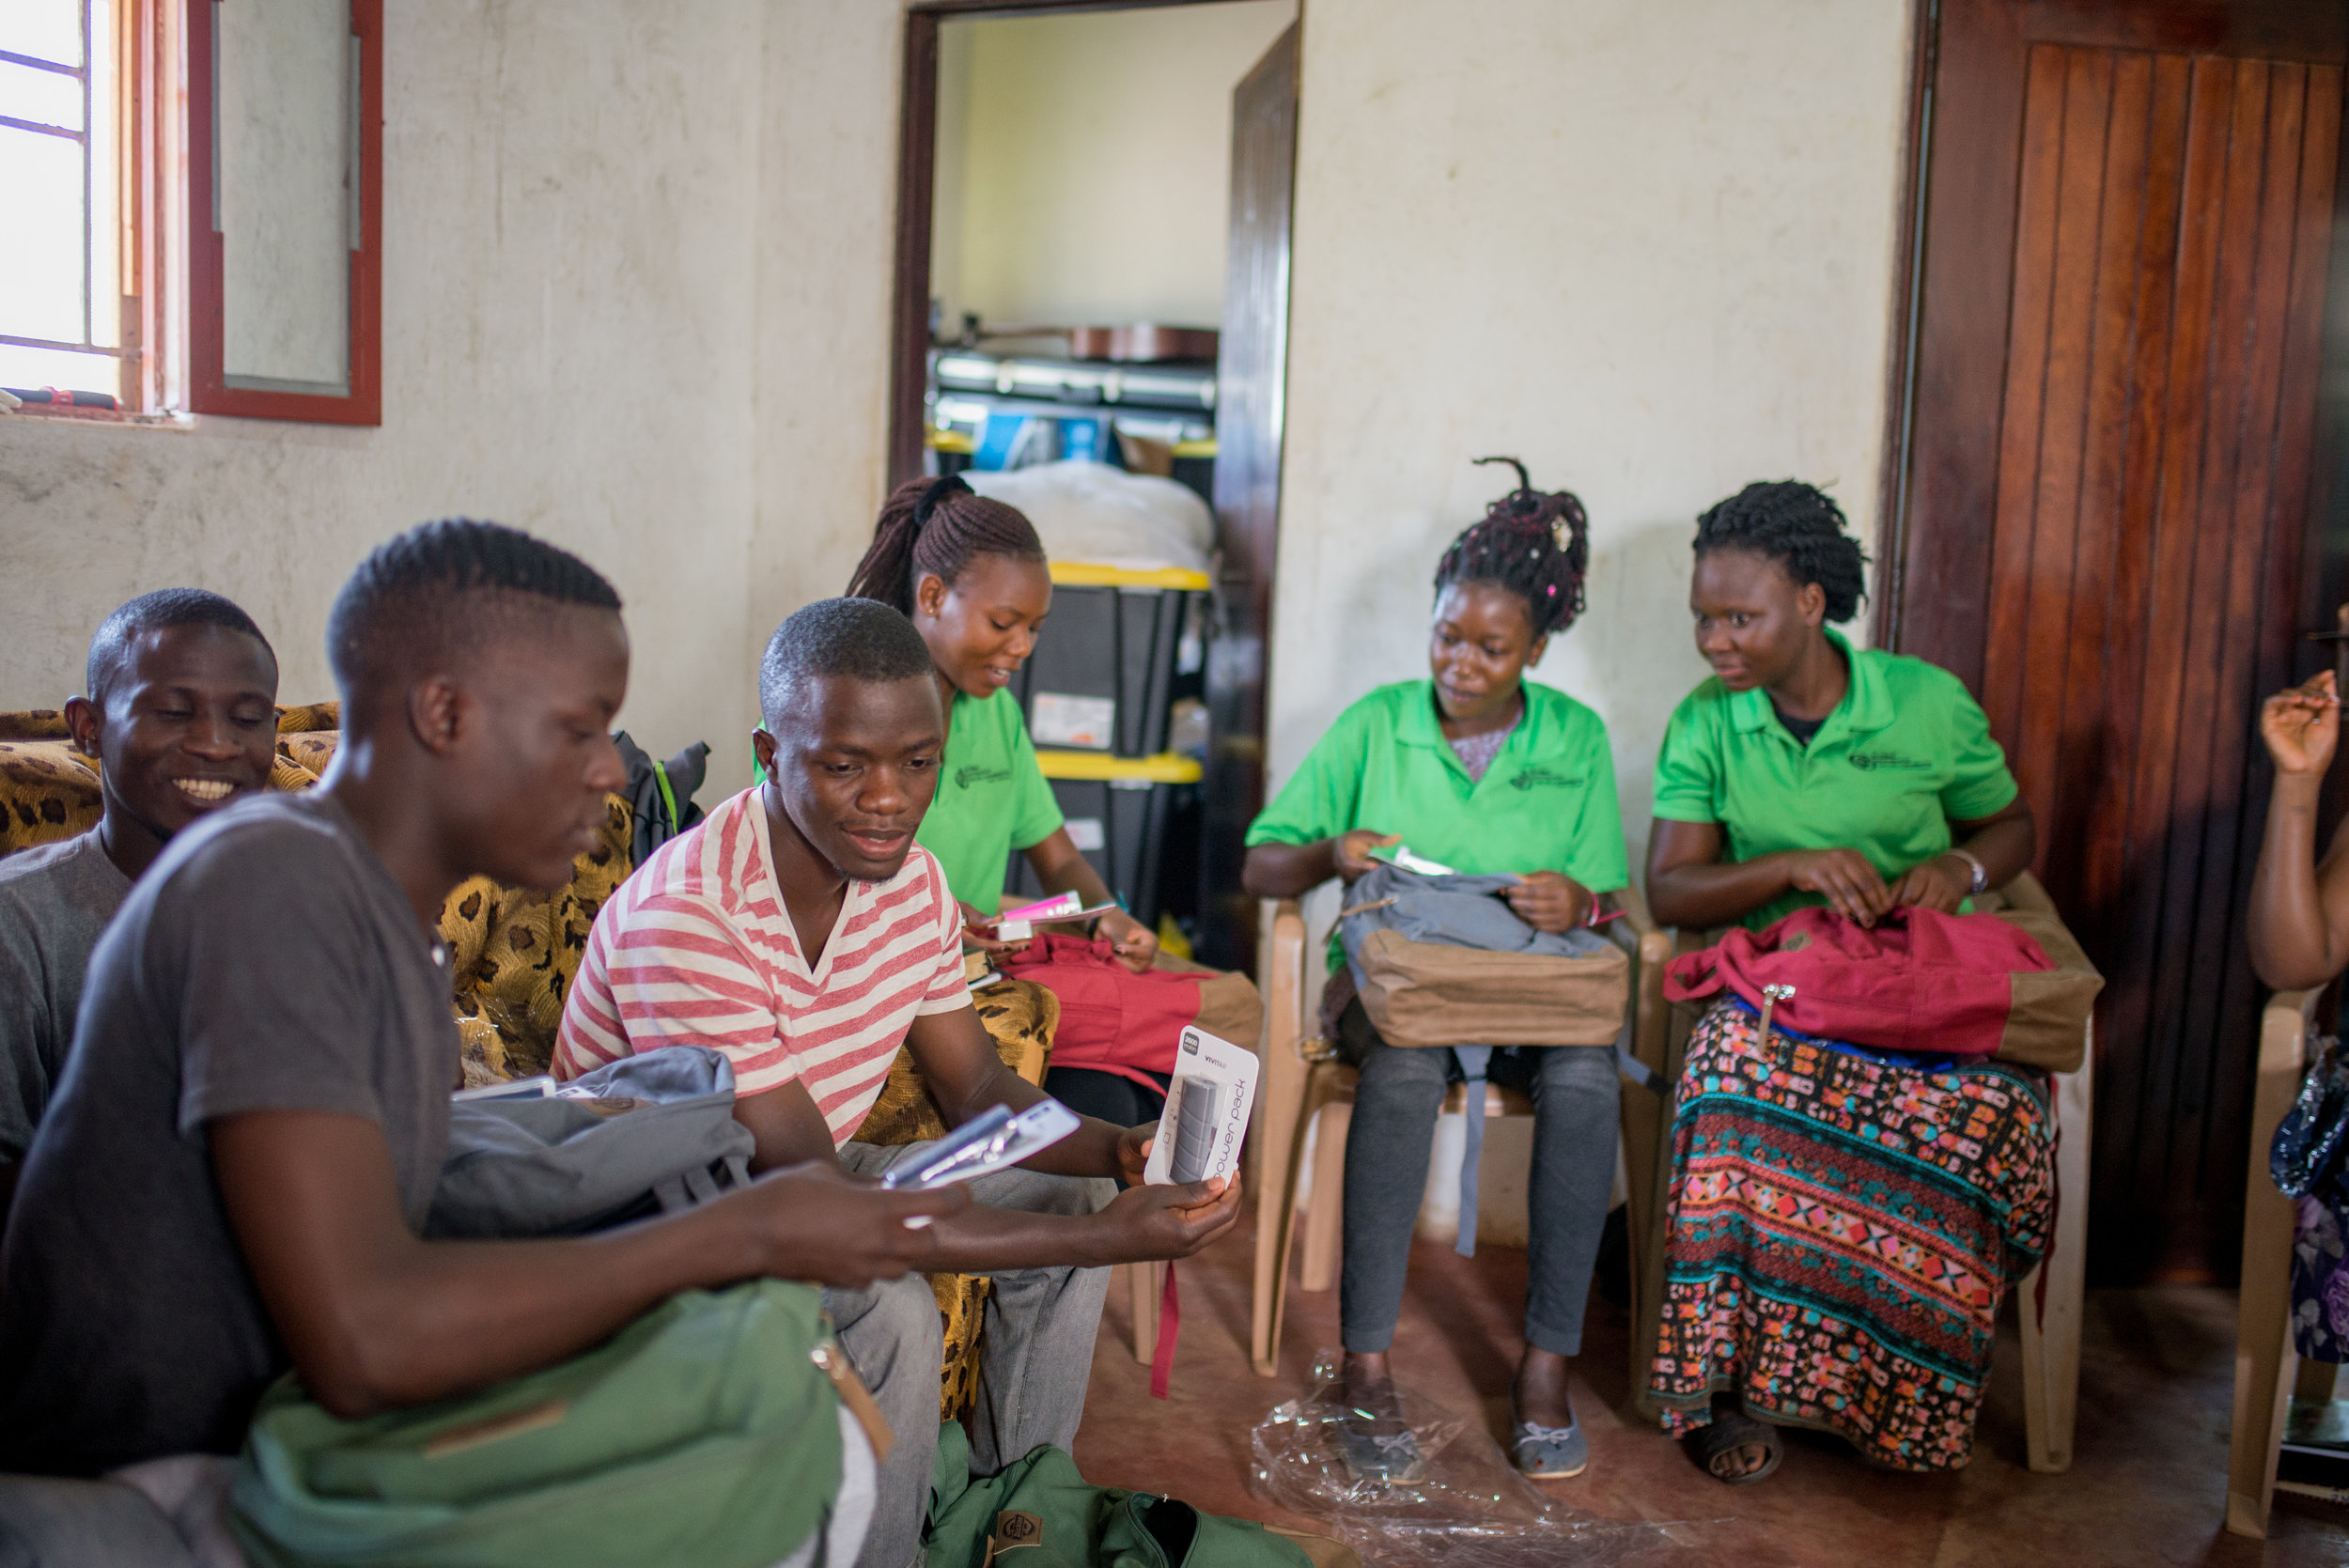 Students at the Institute for G.O.D. East Africa look over gifts that had just been distributed to them: backpacks, embroidered polos, pens and books —necessities to accompany the gift of tuition already supplied to them.